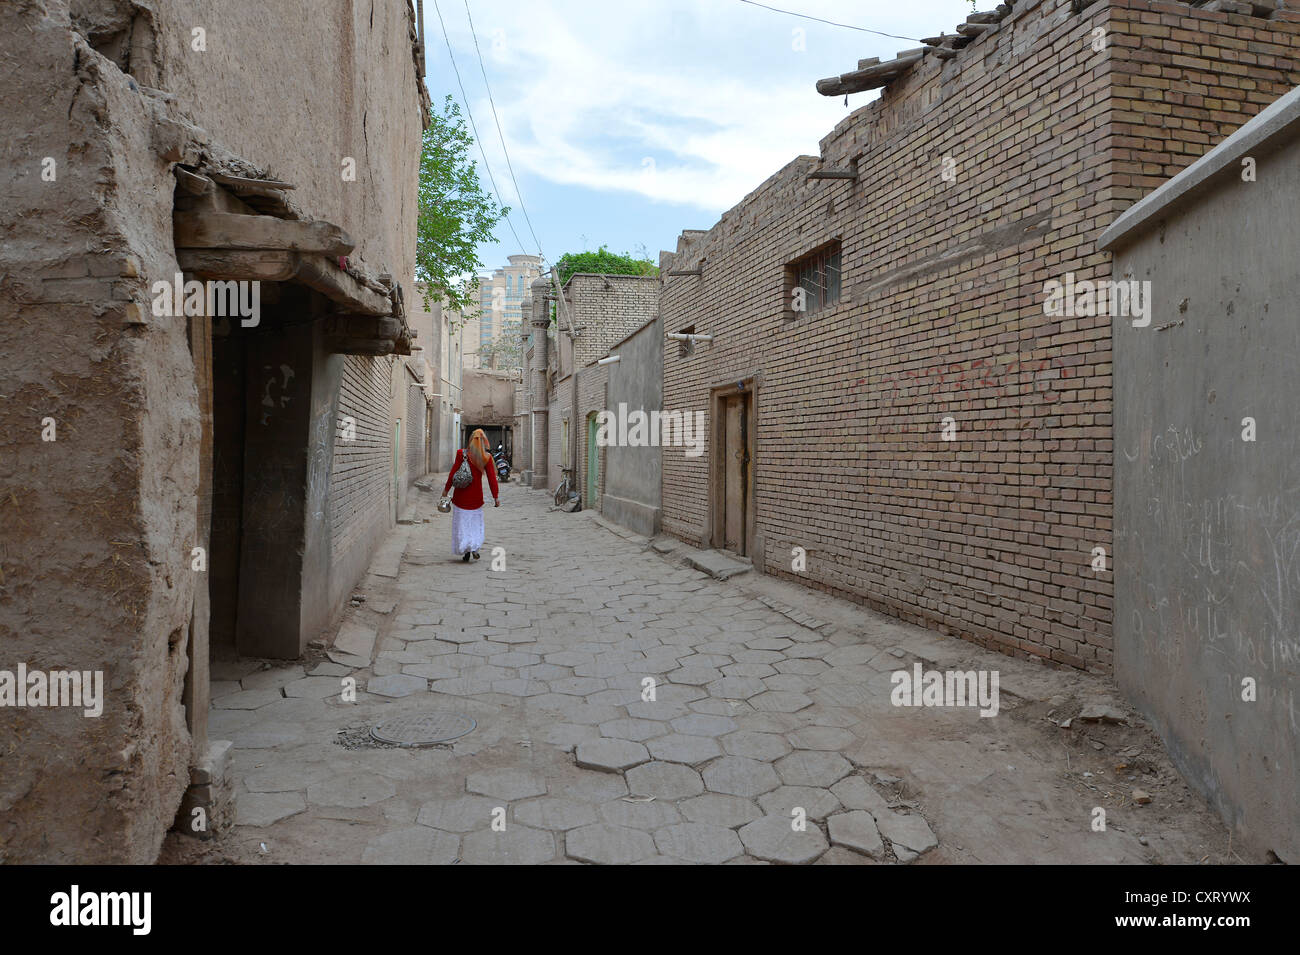 Muslim woman walking though an alleyway in the old town of the Uyghur quarter, old adobe brick architecture, Silk Stock Photo